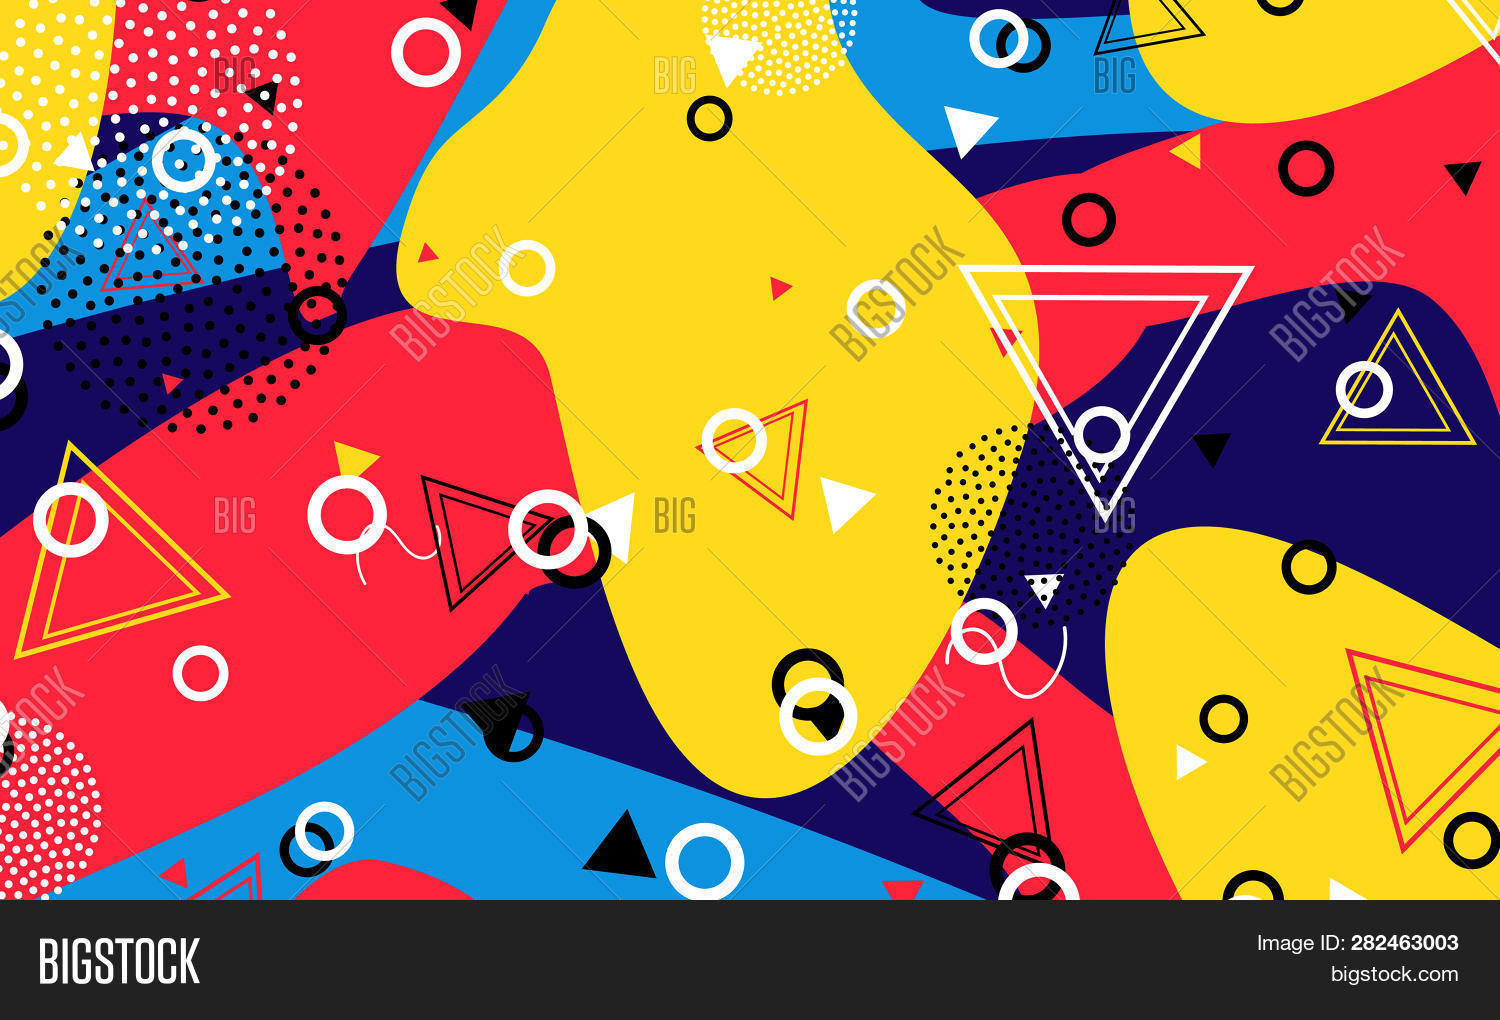 80s,90s,abstract,art,artistic,backdrop,background,banner,blue,bright,business,card,color,cover,creative,design,dot,element,fashion,flat,geometric,geometry,graphic,hipster,layer,line,memphis,modern,paint,paper,pattern,pop,poster,print,red,round,shape,simple,site,splash,style,template,texture,trendy,vector,wallpaper,web,website,yellow